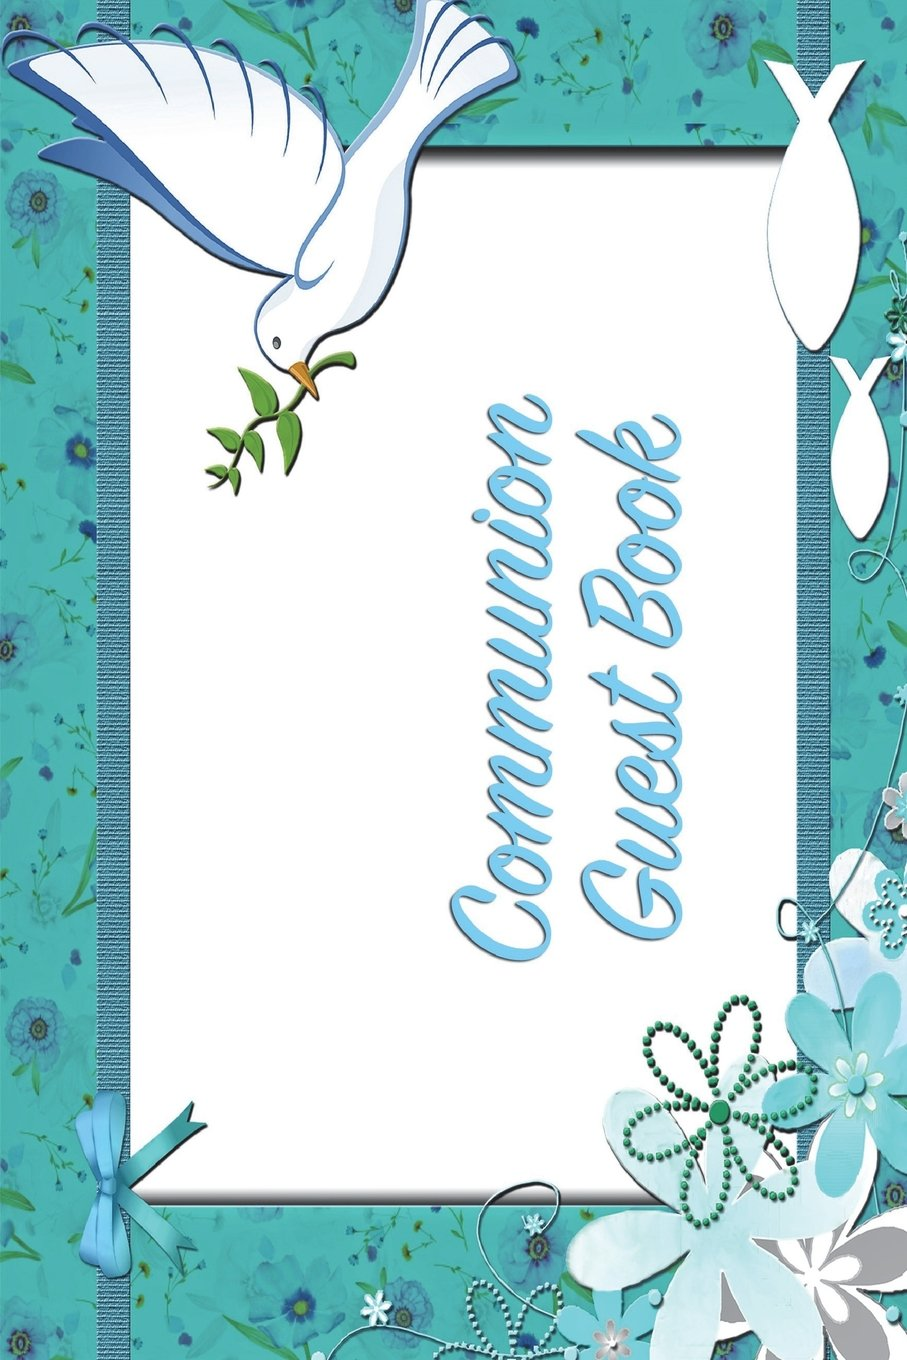 Communion Guestbook: Versatile 6x9 Communion / Confirmation  Notebook Guestbook Journal for Special Occasions ~ For Visitors Best Wishes Guest Book ... Relatives and More - Communion Dove Cover pdf epub